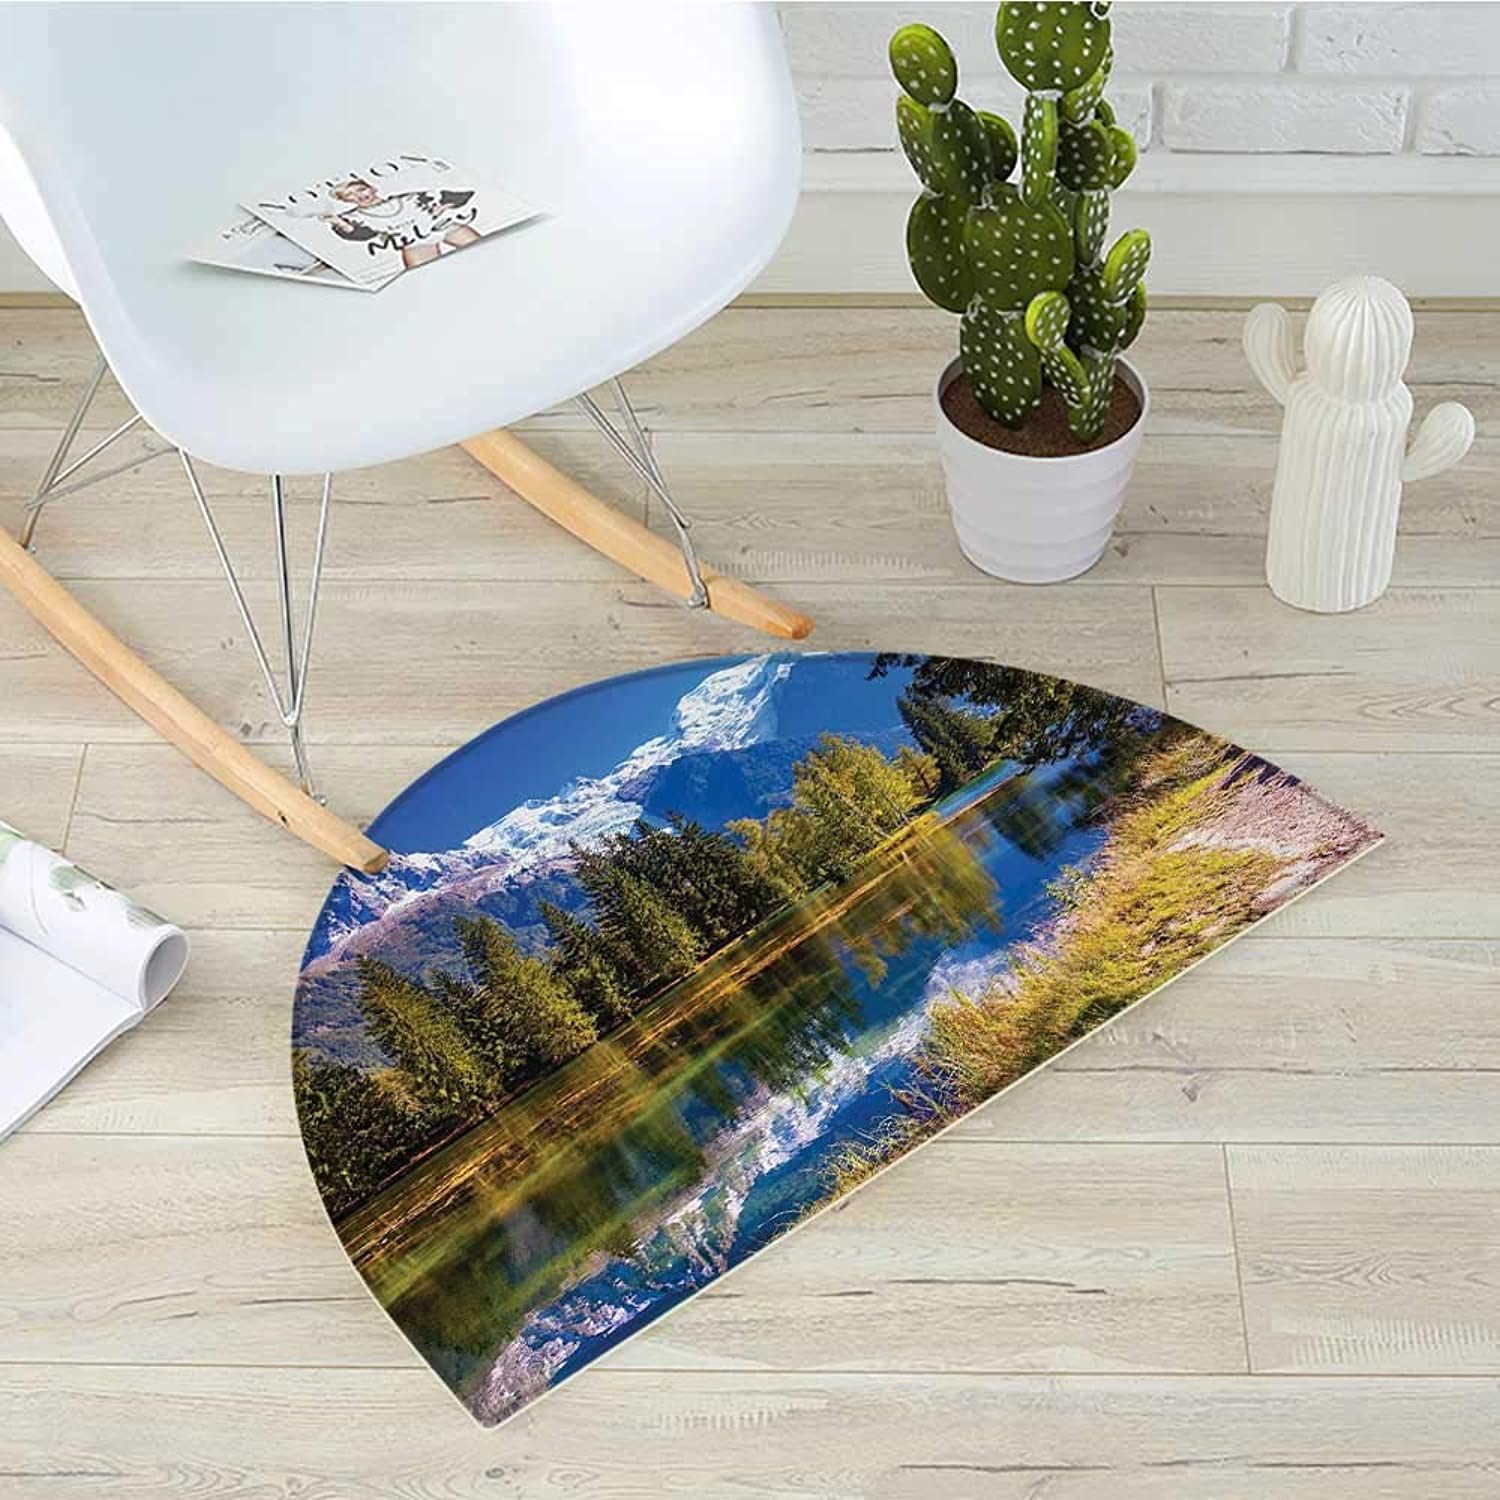 Mountain Semicircle Doormat Snow Covered Alps Peaks Covered with Fir Trees in Lake Natural Paradise Halfmoon doormats H 43.3  xD 64.9  Green White bluee